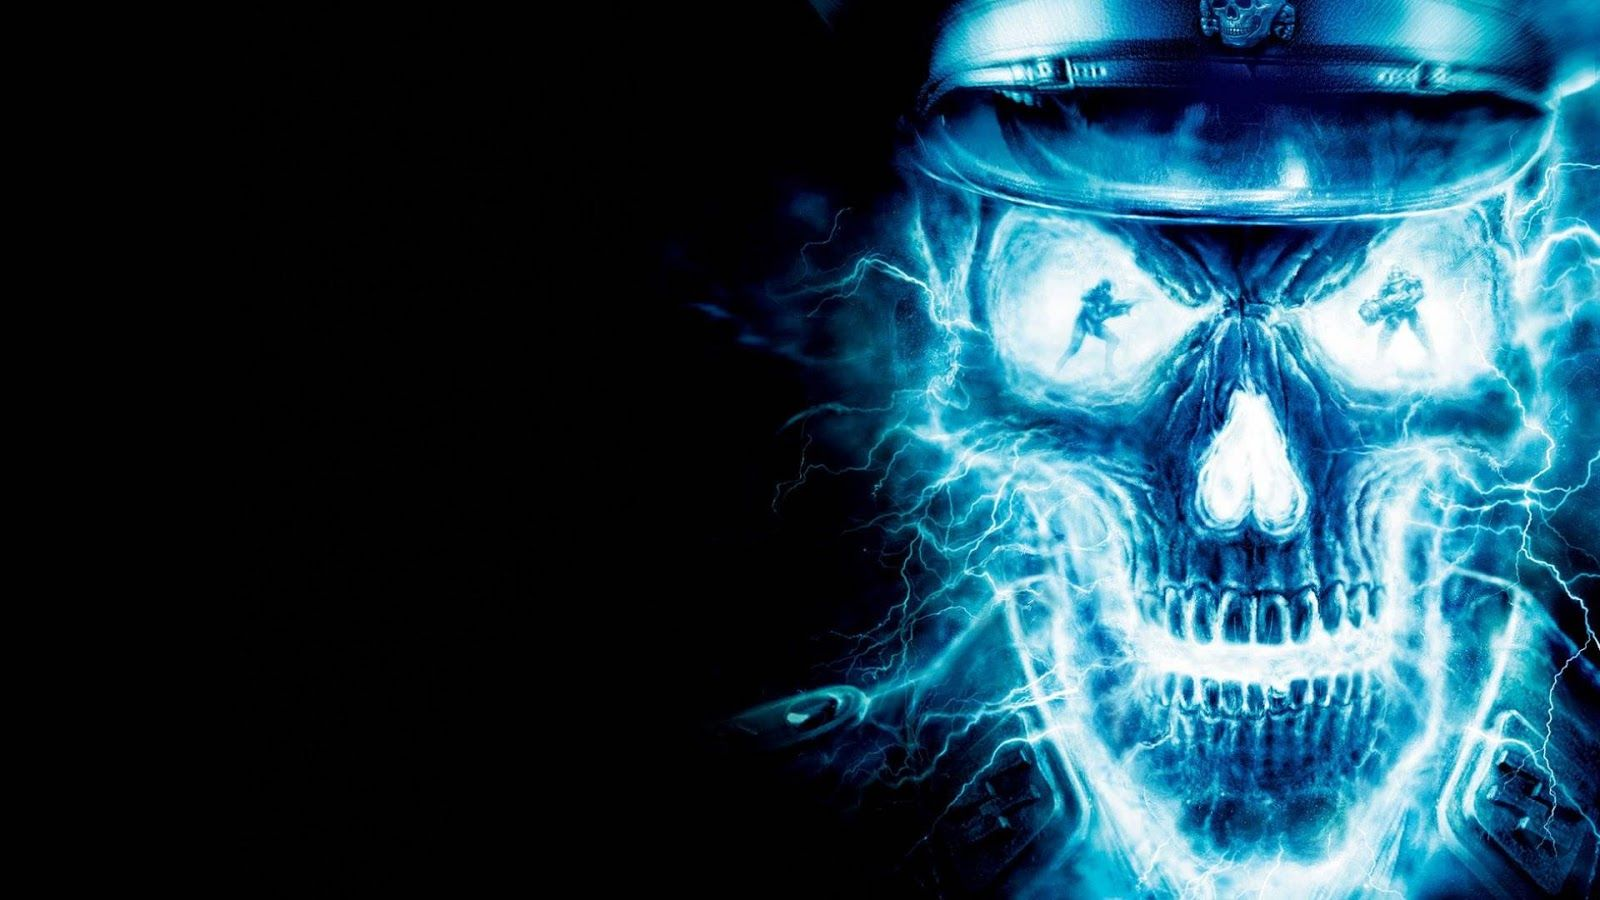 Hd Skull Wallpapers 1080p Skull Wallpaper Ghost Rider Wallpaper Hd Skull Wallpapers